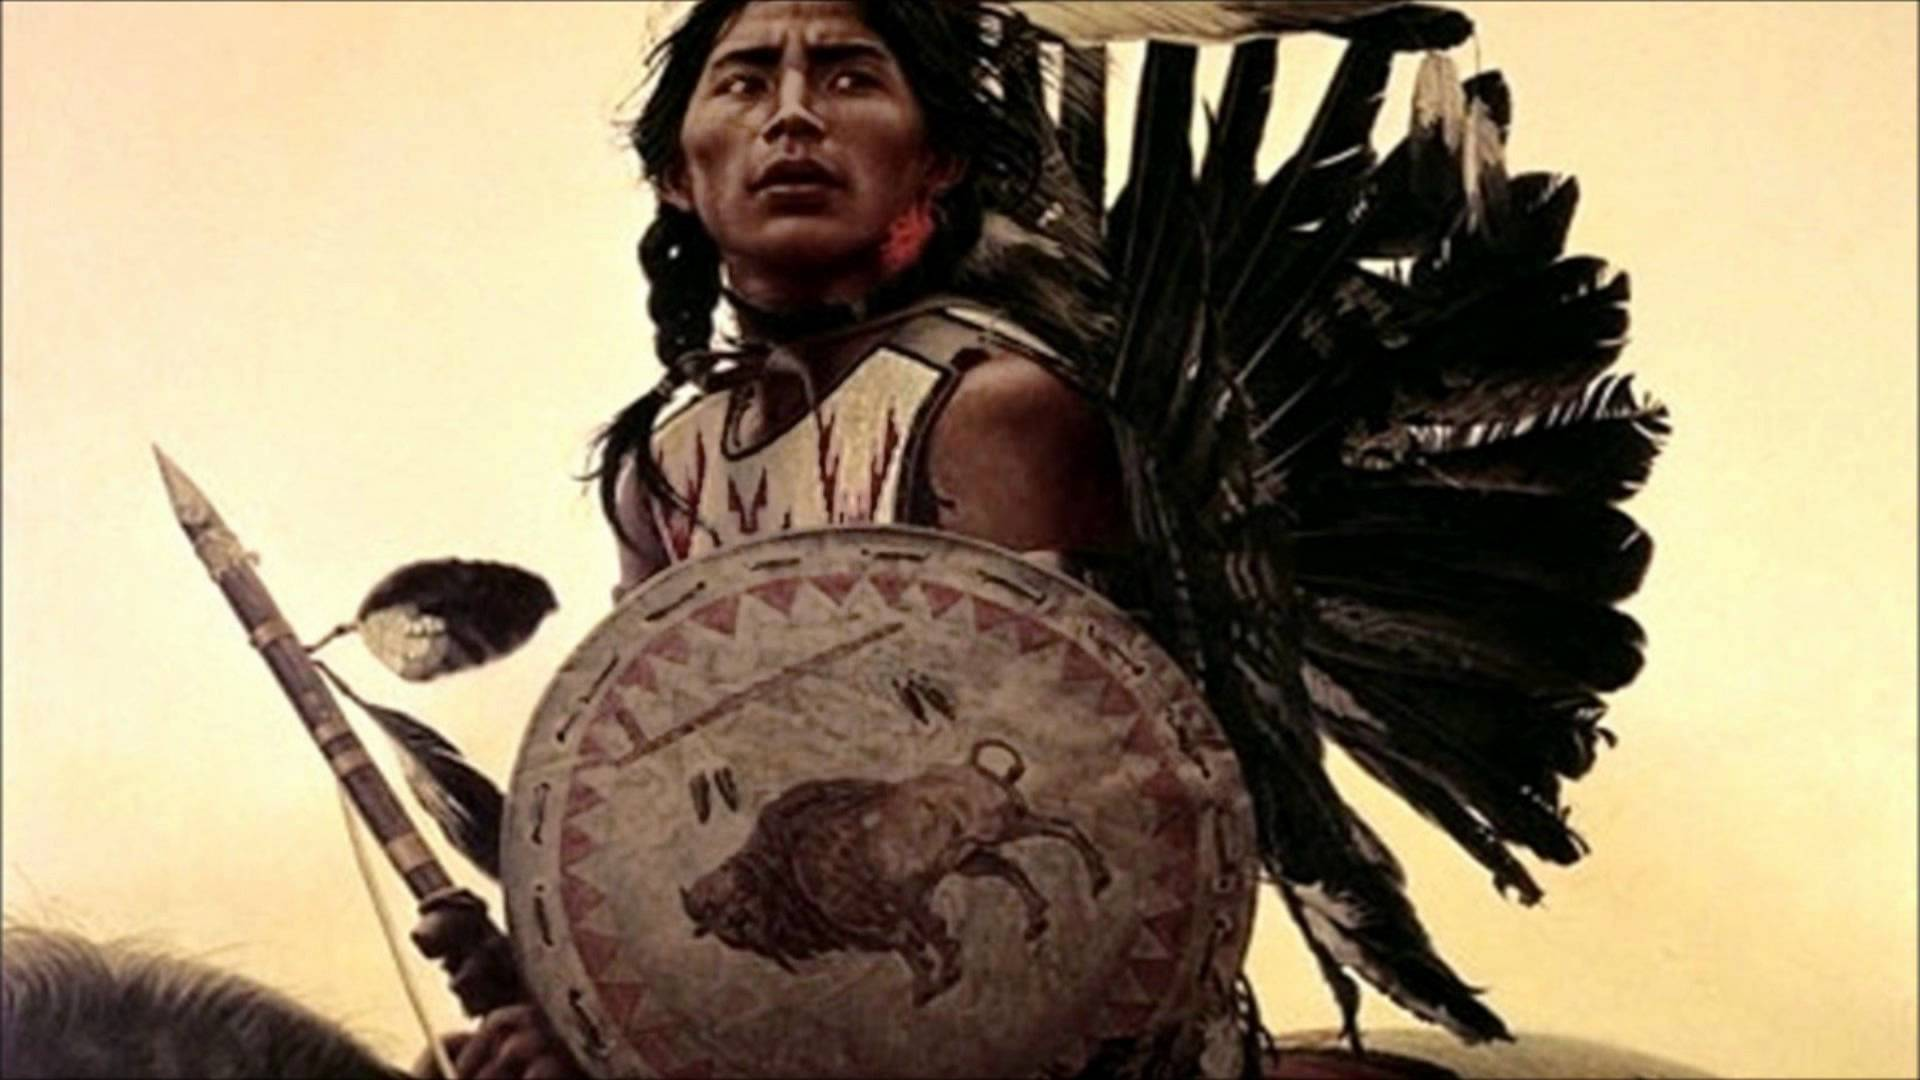 for apache indian warrior displaying 19 images for apache indian 1920x1080